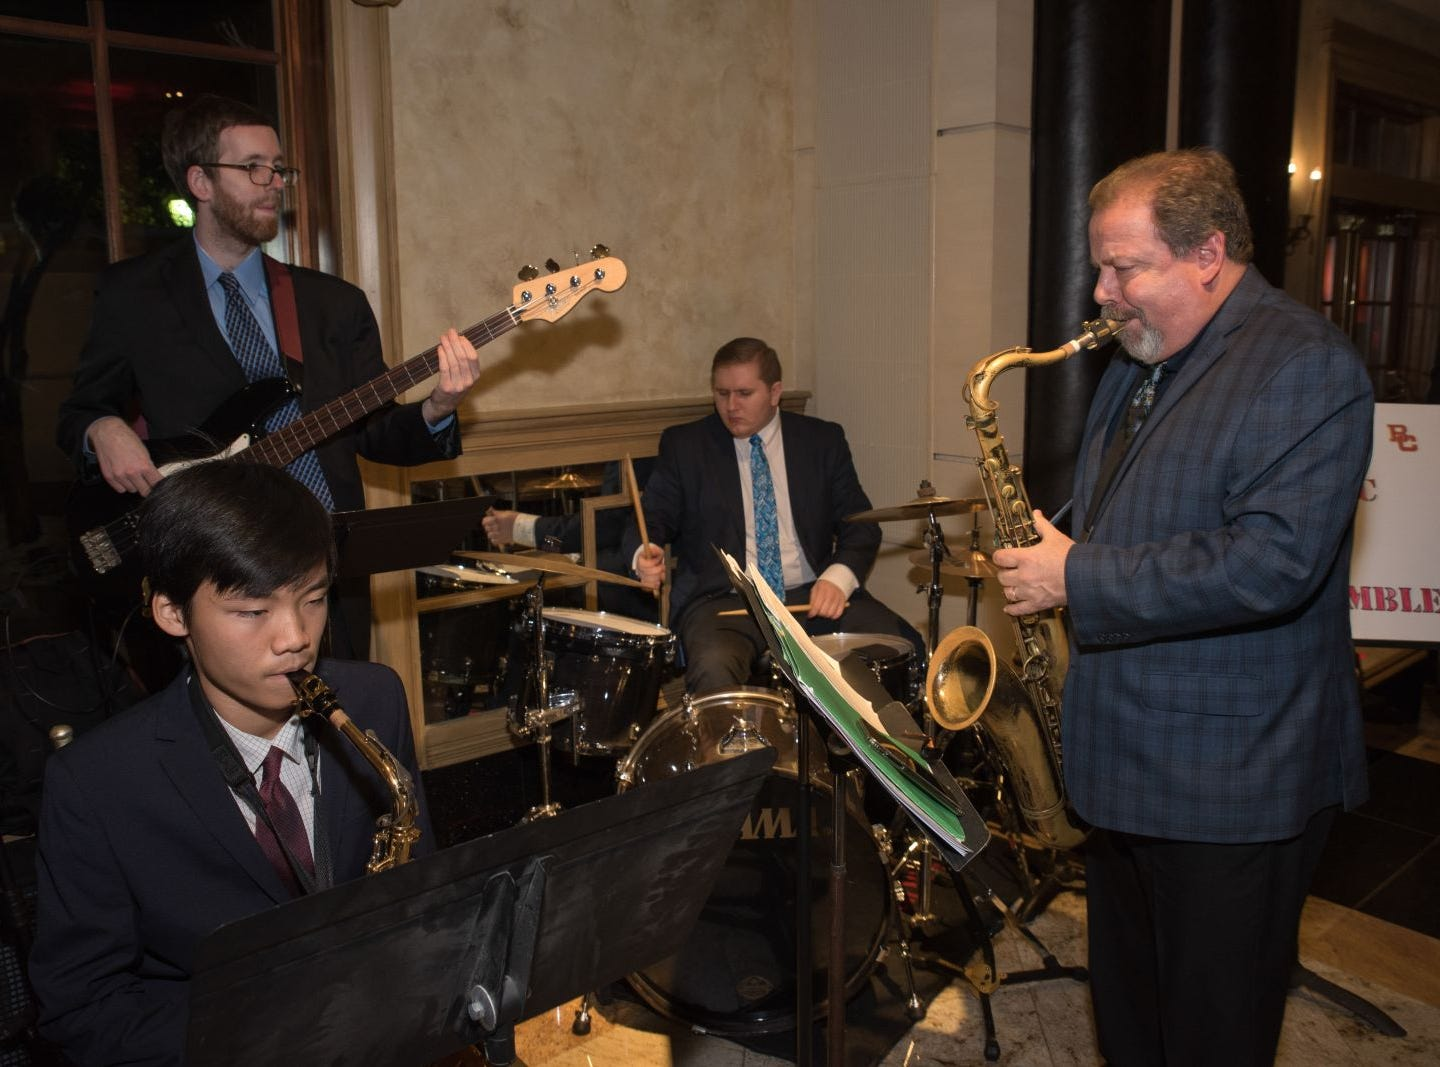 Peter Furlan and The Bergen Catholic Honors Jazz Ensemble. Bergen Catholic High School celebrates their 2018 Crusader Gala at The Venetian in Garfield. 11/16/2018